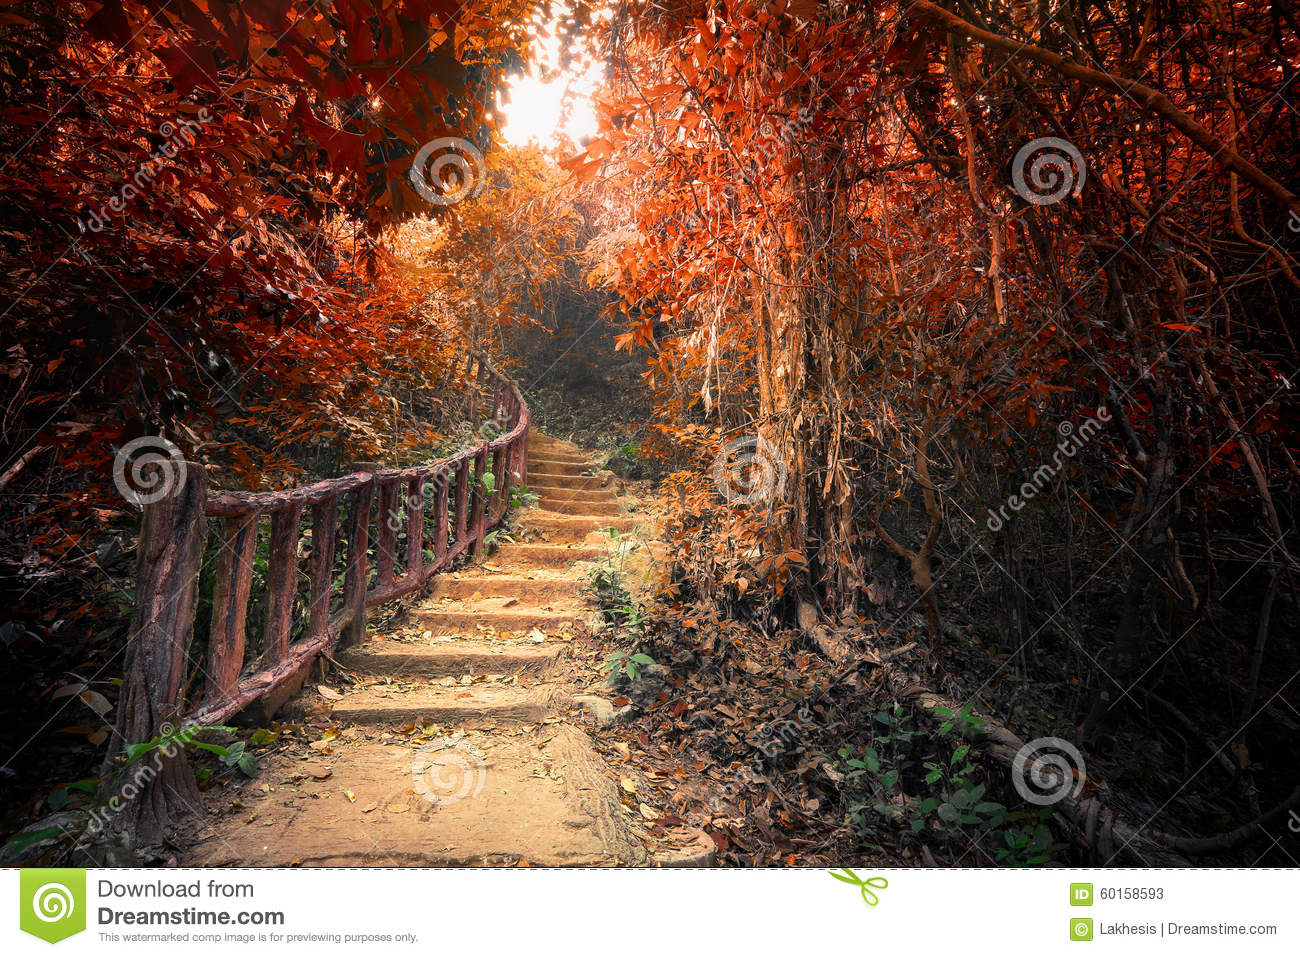 Fall Trees Desktop Wallpaper Fantasy Autumn Forest With Path Way Through Dense Trees